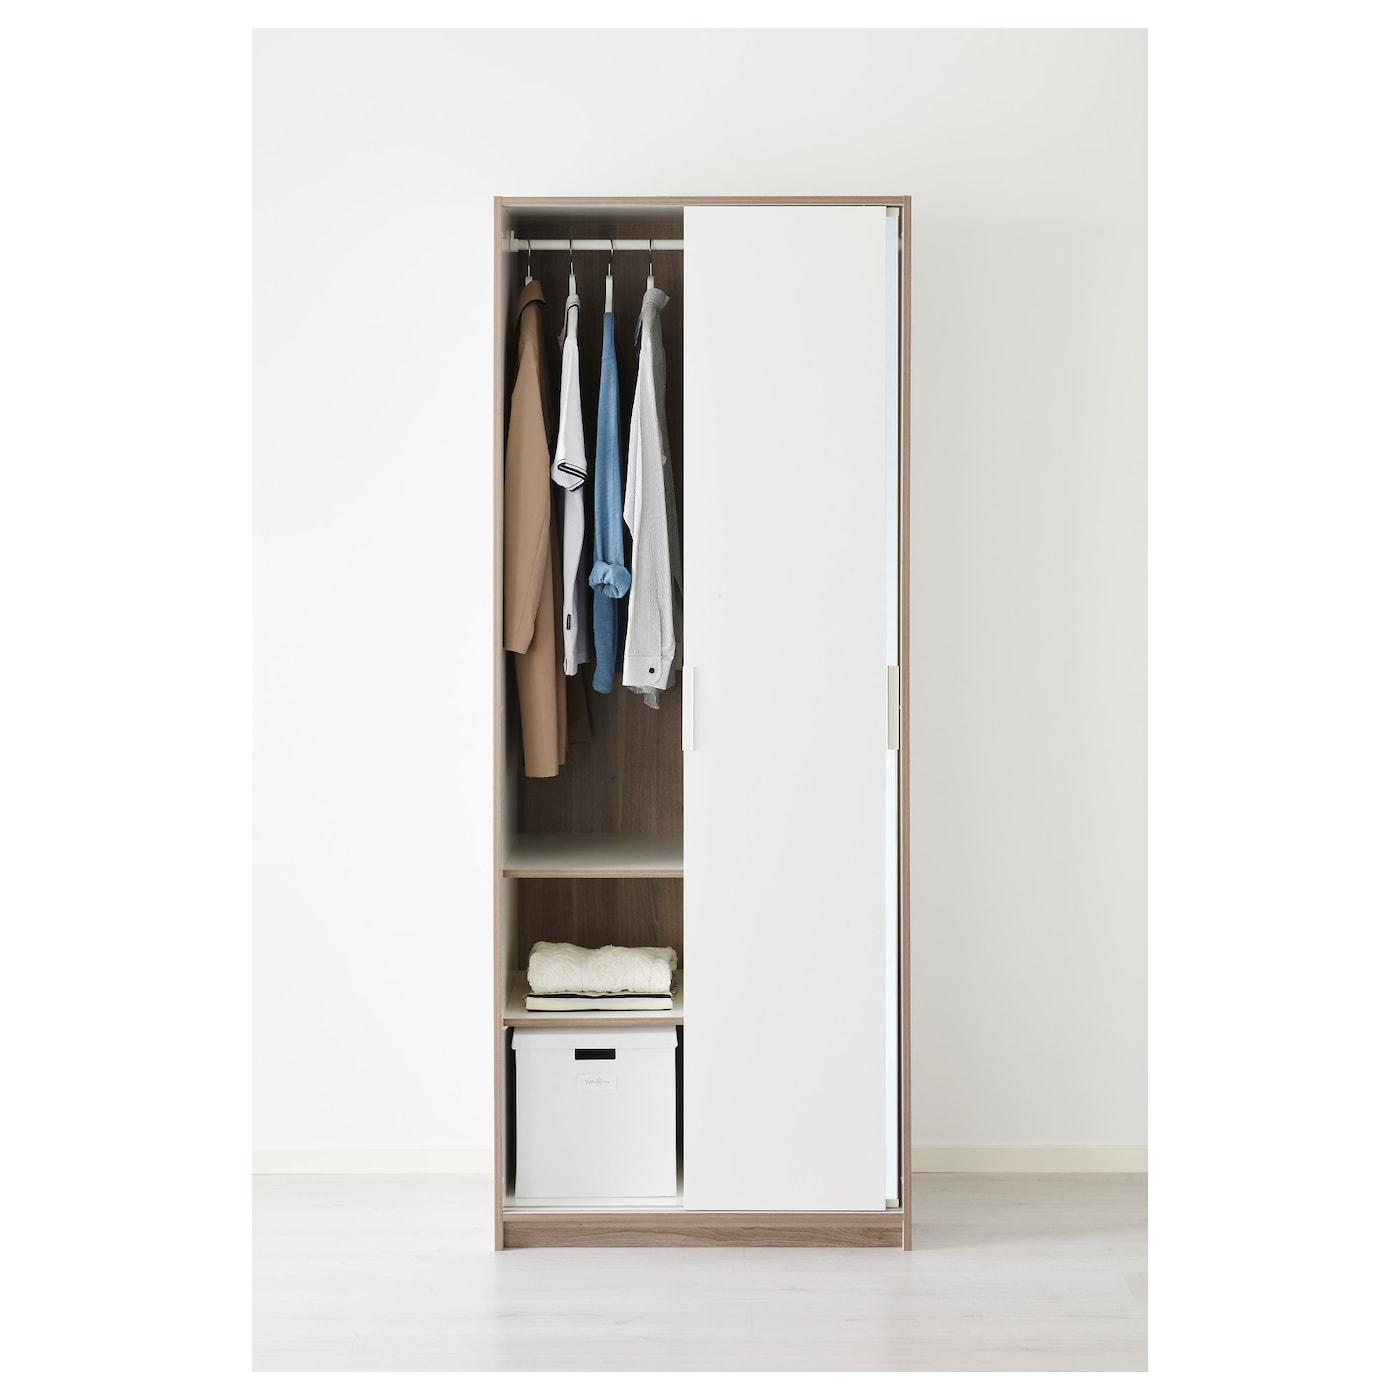 Trysil wardrobe white mirror glass 79 x 61 x 202 cm ikea - Ikea armoire with mirror ...